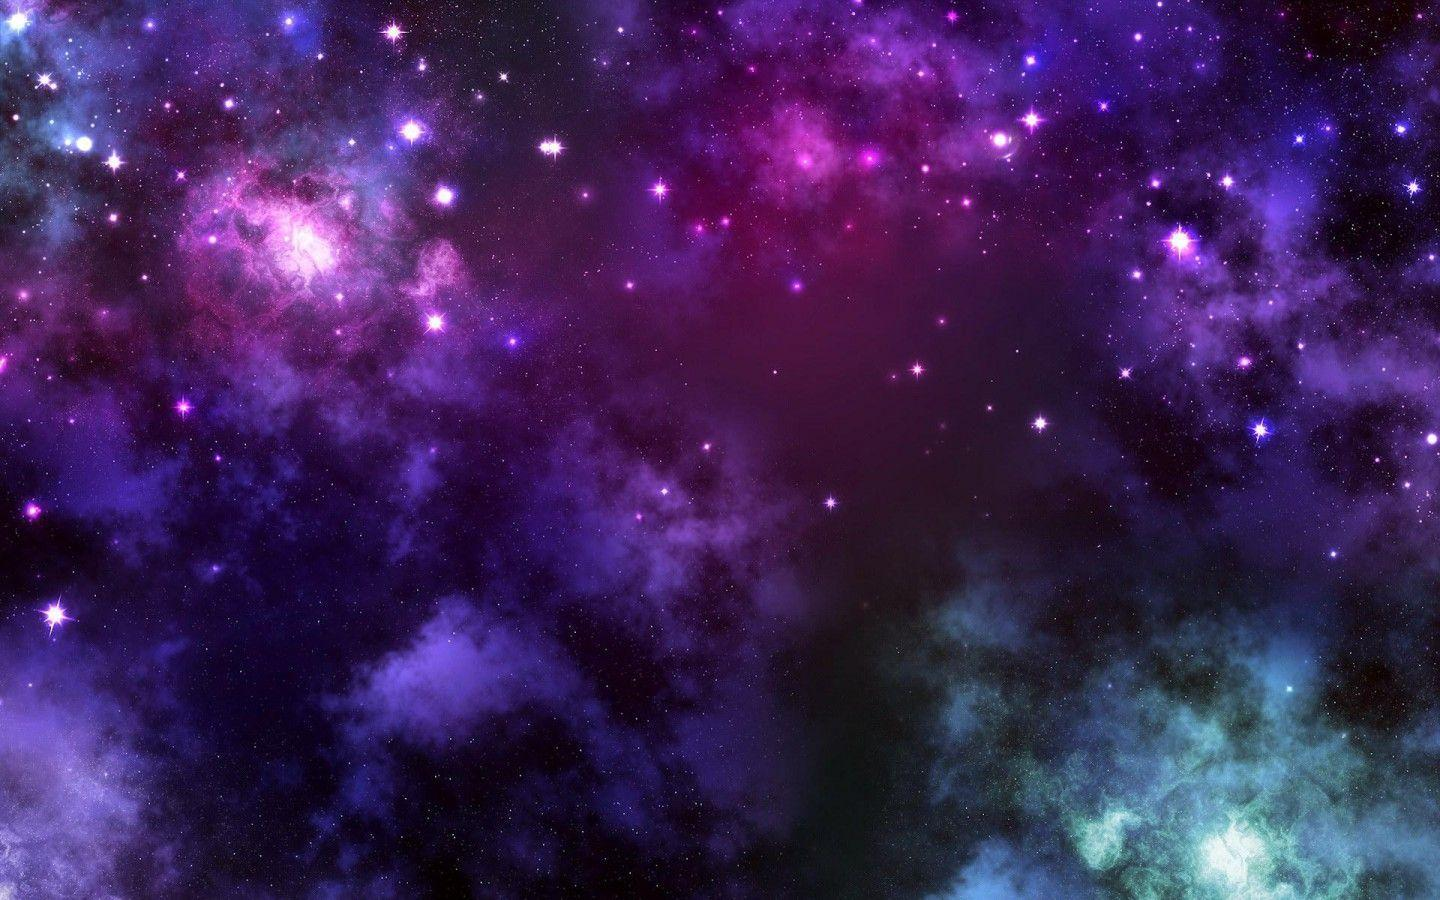 Outer Space Backgrounds Hd Image 3 HD Wallpapers